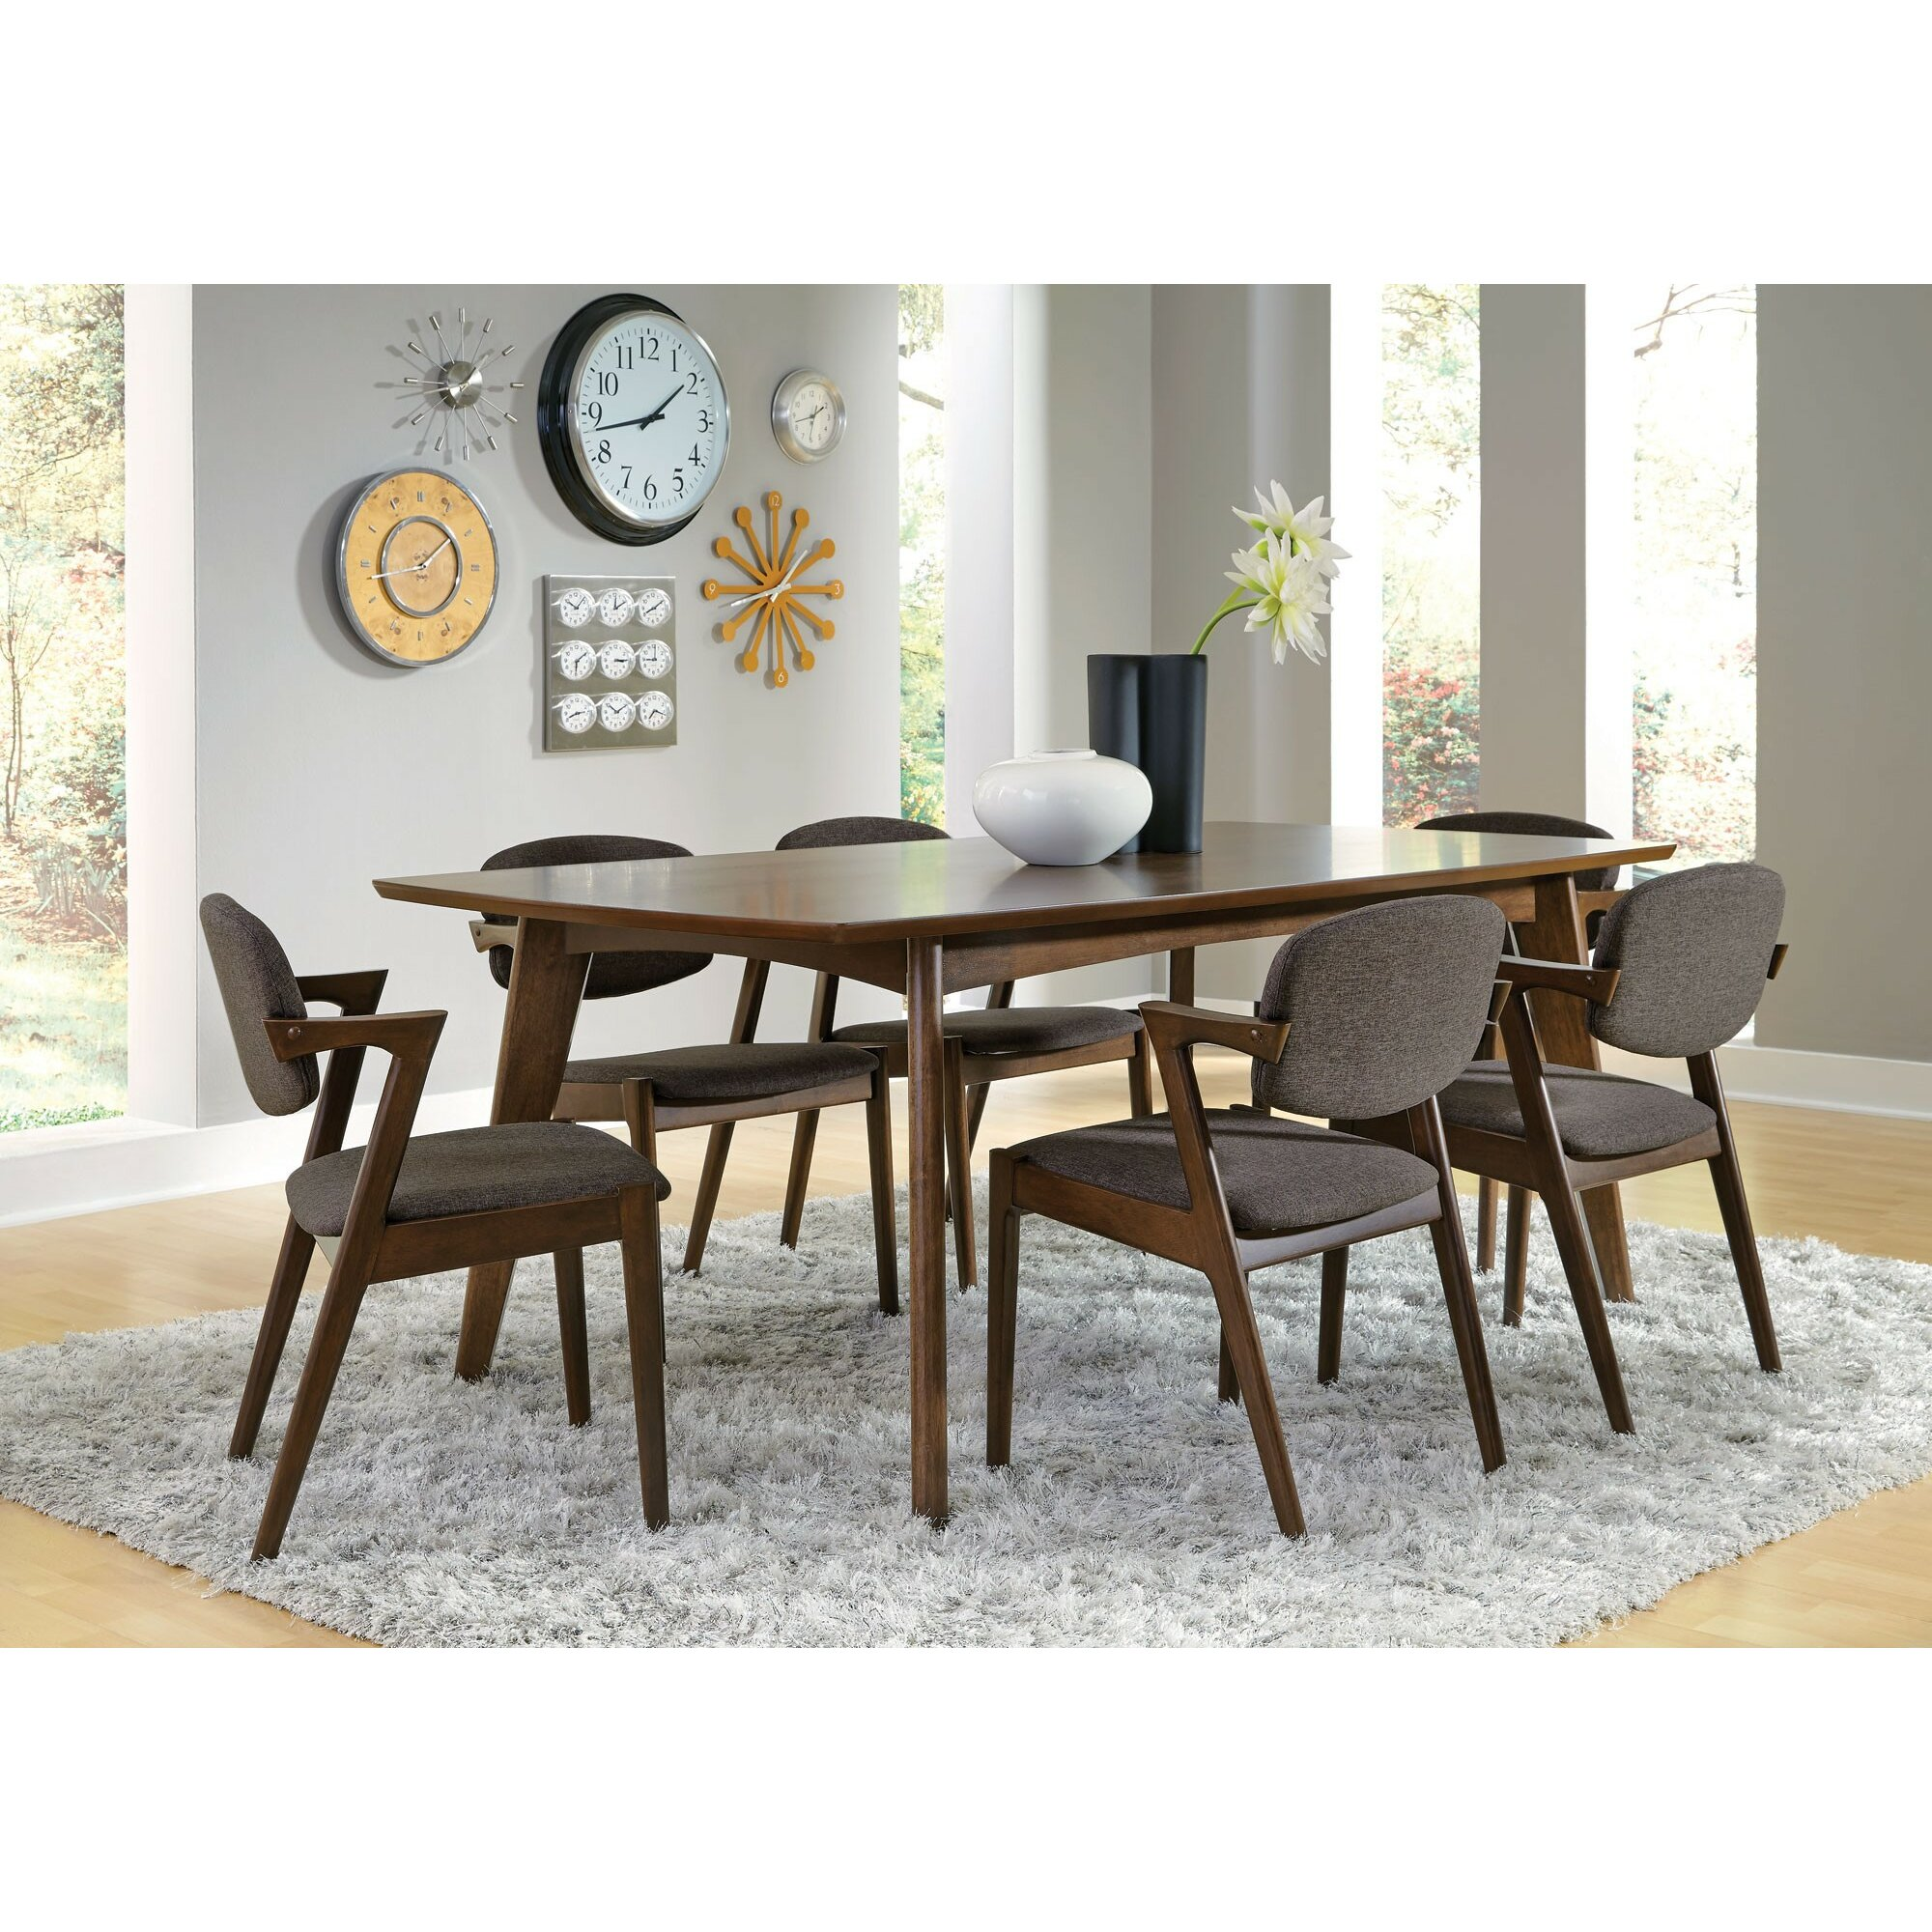 modern contemporary dining room sets allmodern - Low Dining Room Table